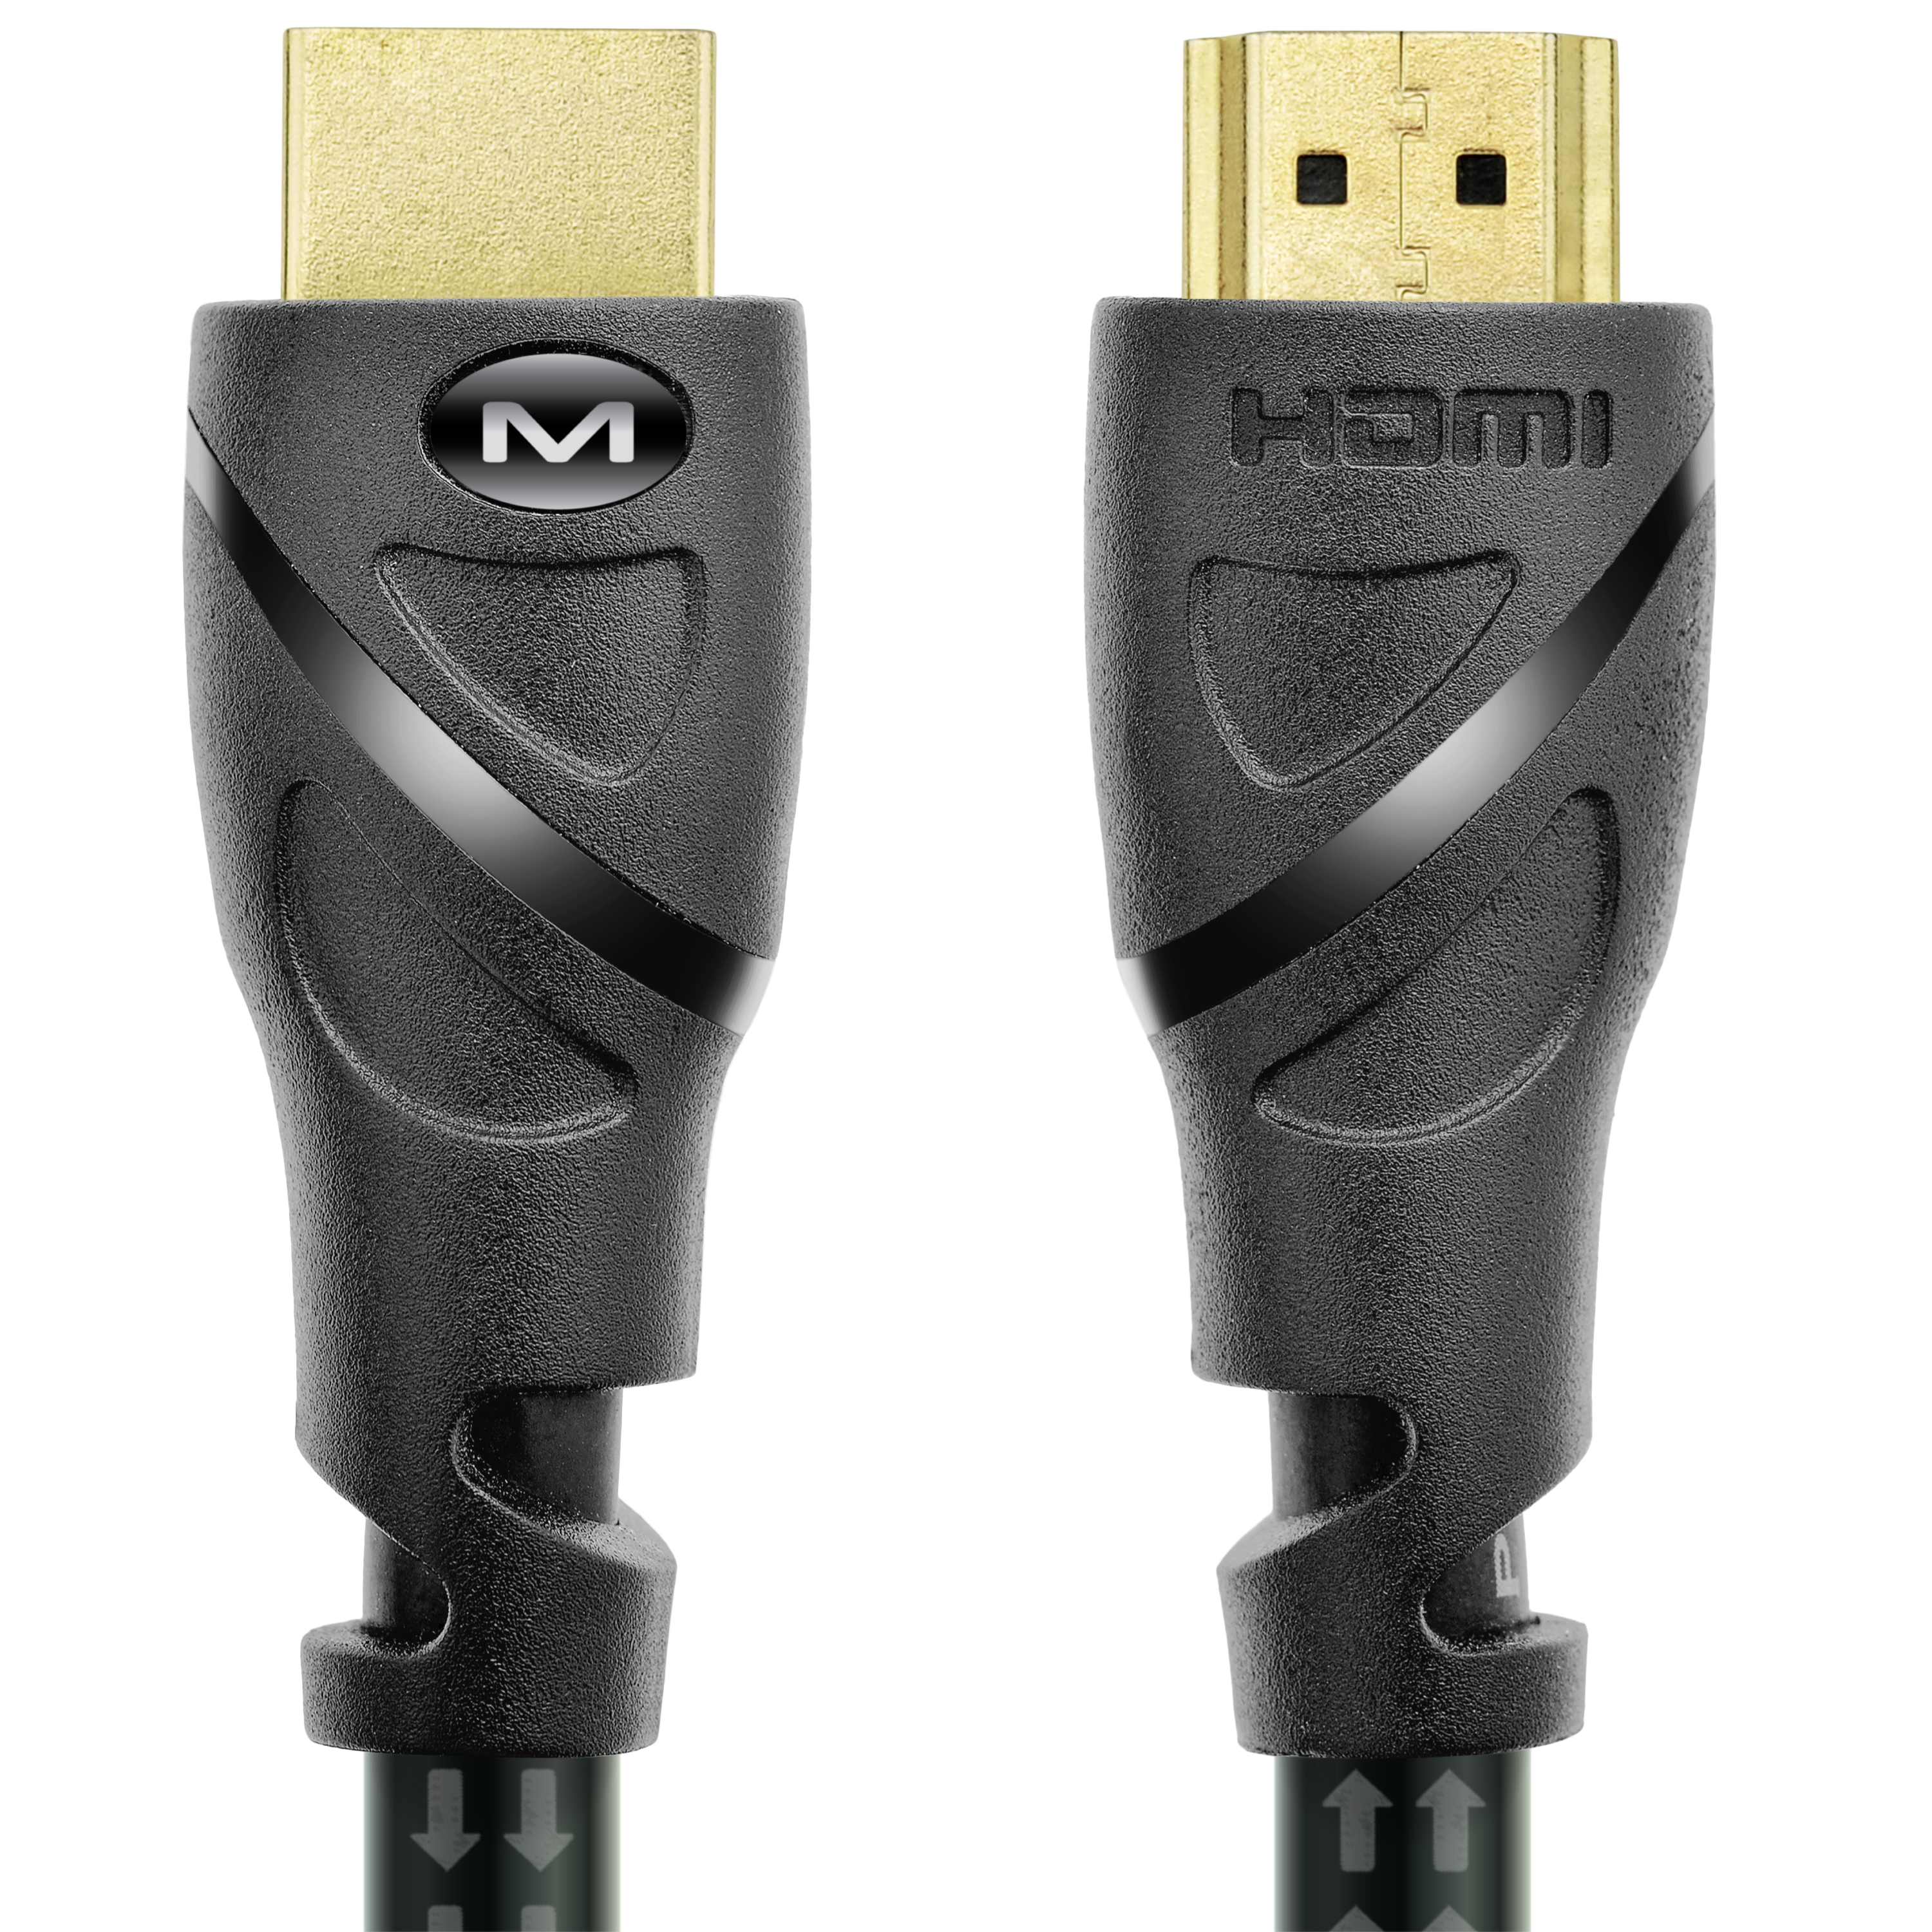 Shop New ULTRA Series Active HDMI Cable (35 Feet) | Mediabridge Products